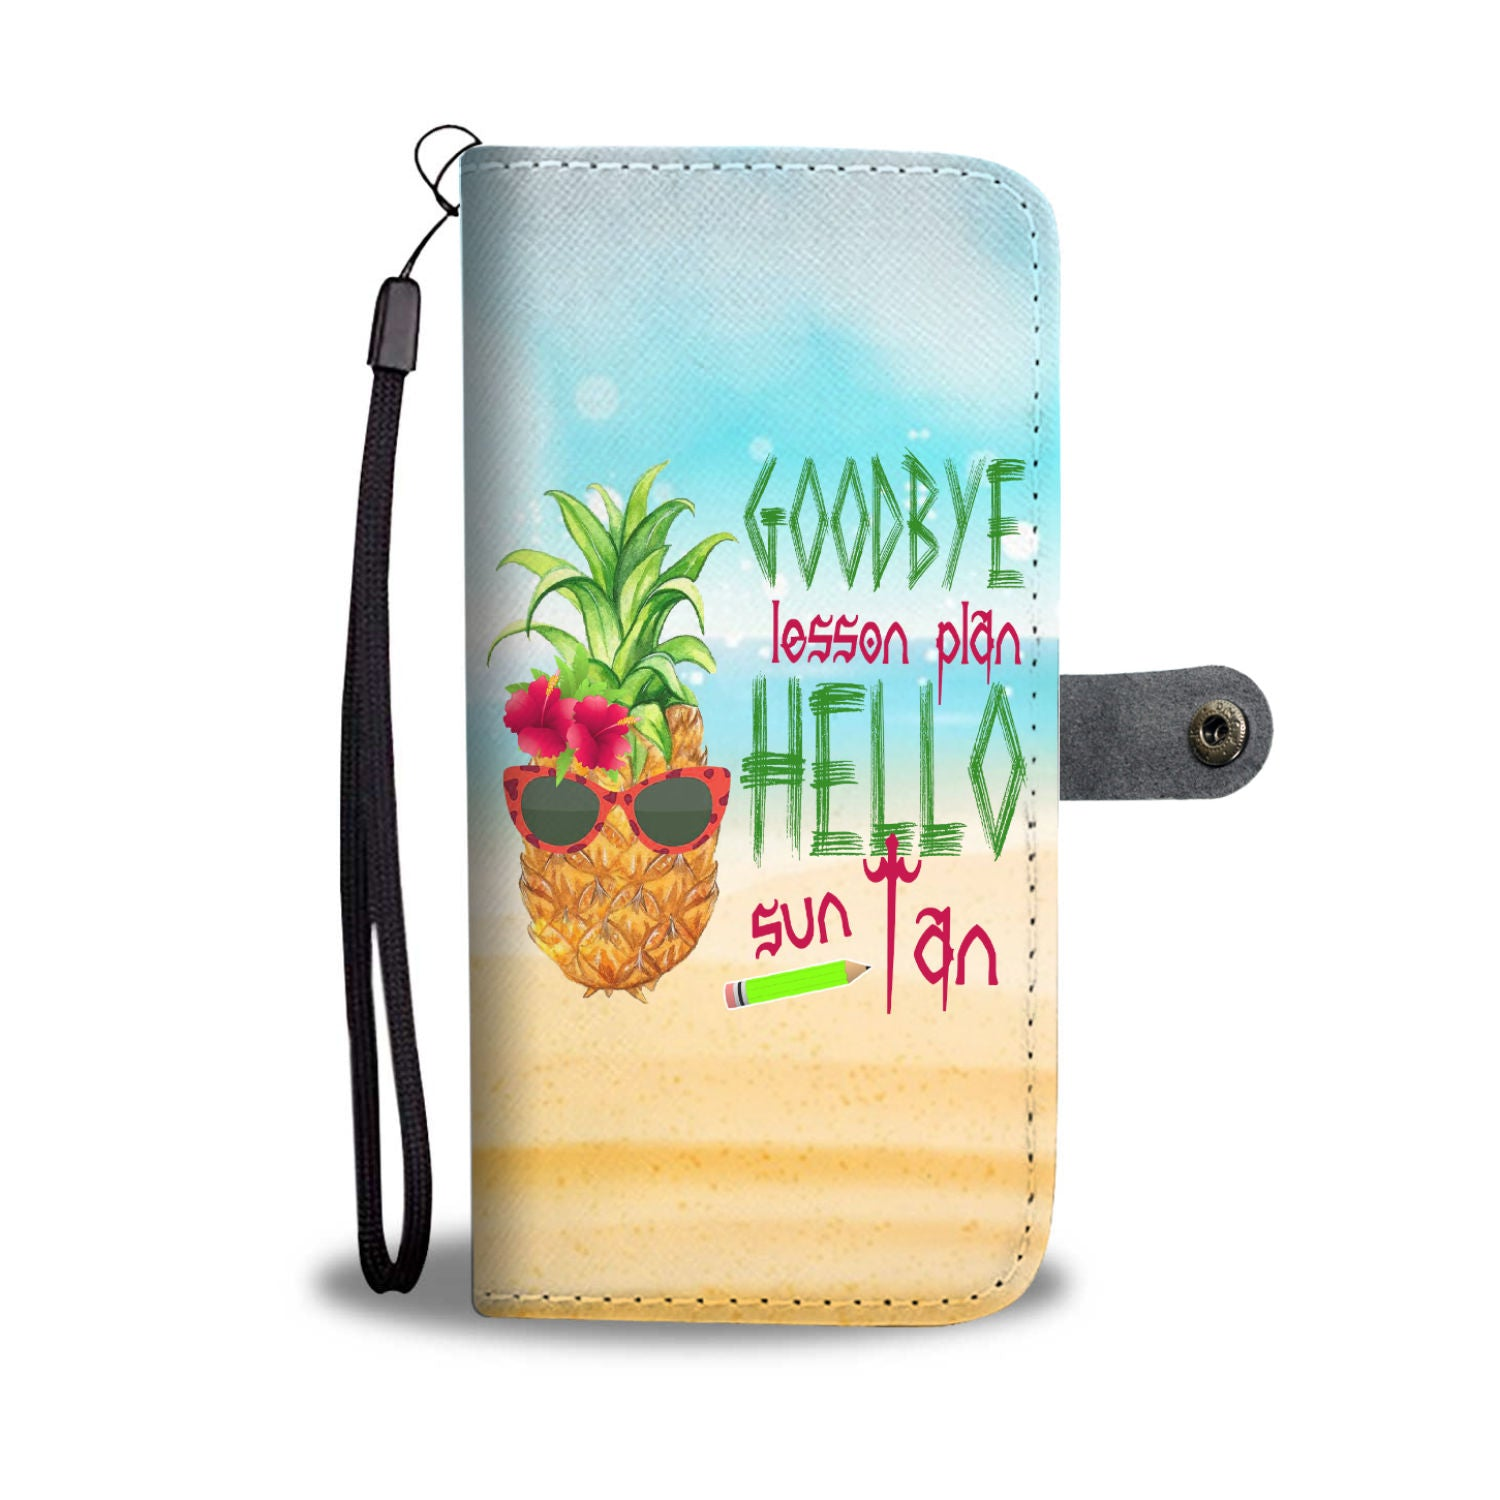 VIRA summer vacation leather- like wallet case for awesome teachers